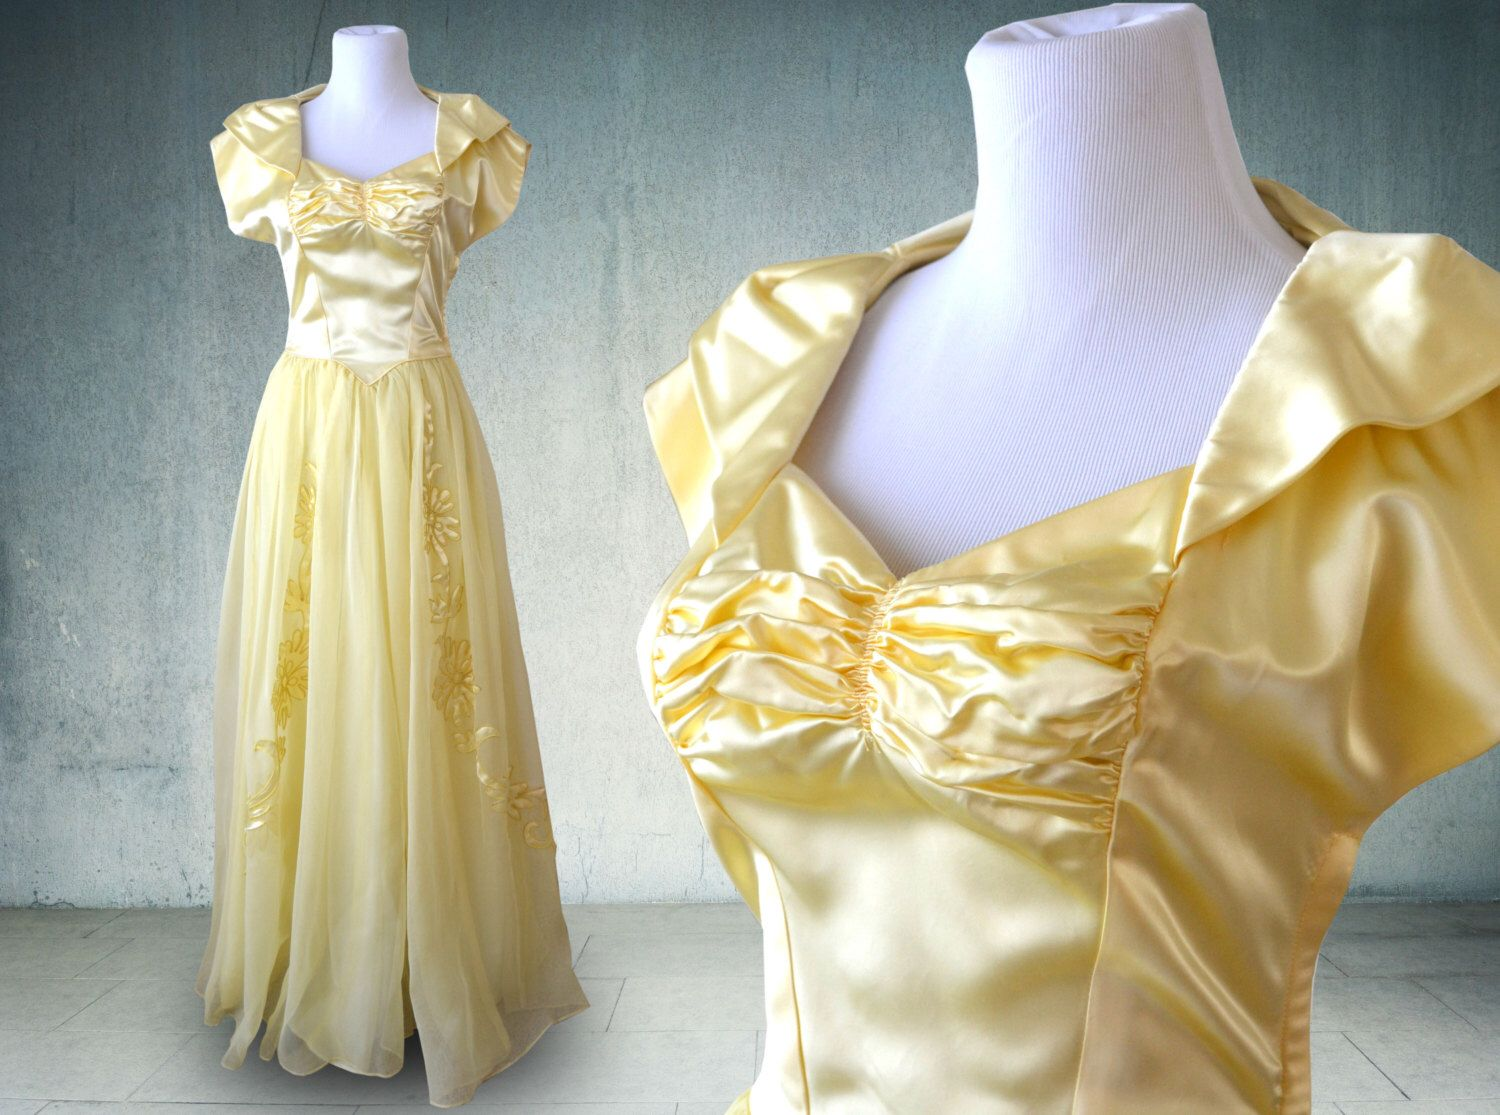 S evening gown in yellow satin and chiffon wedding dress by